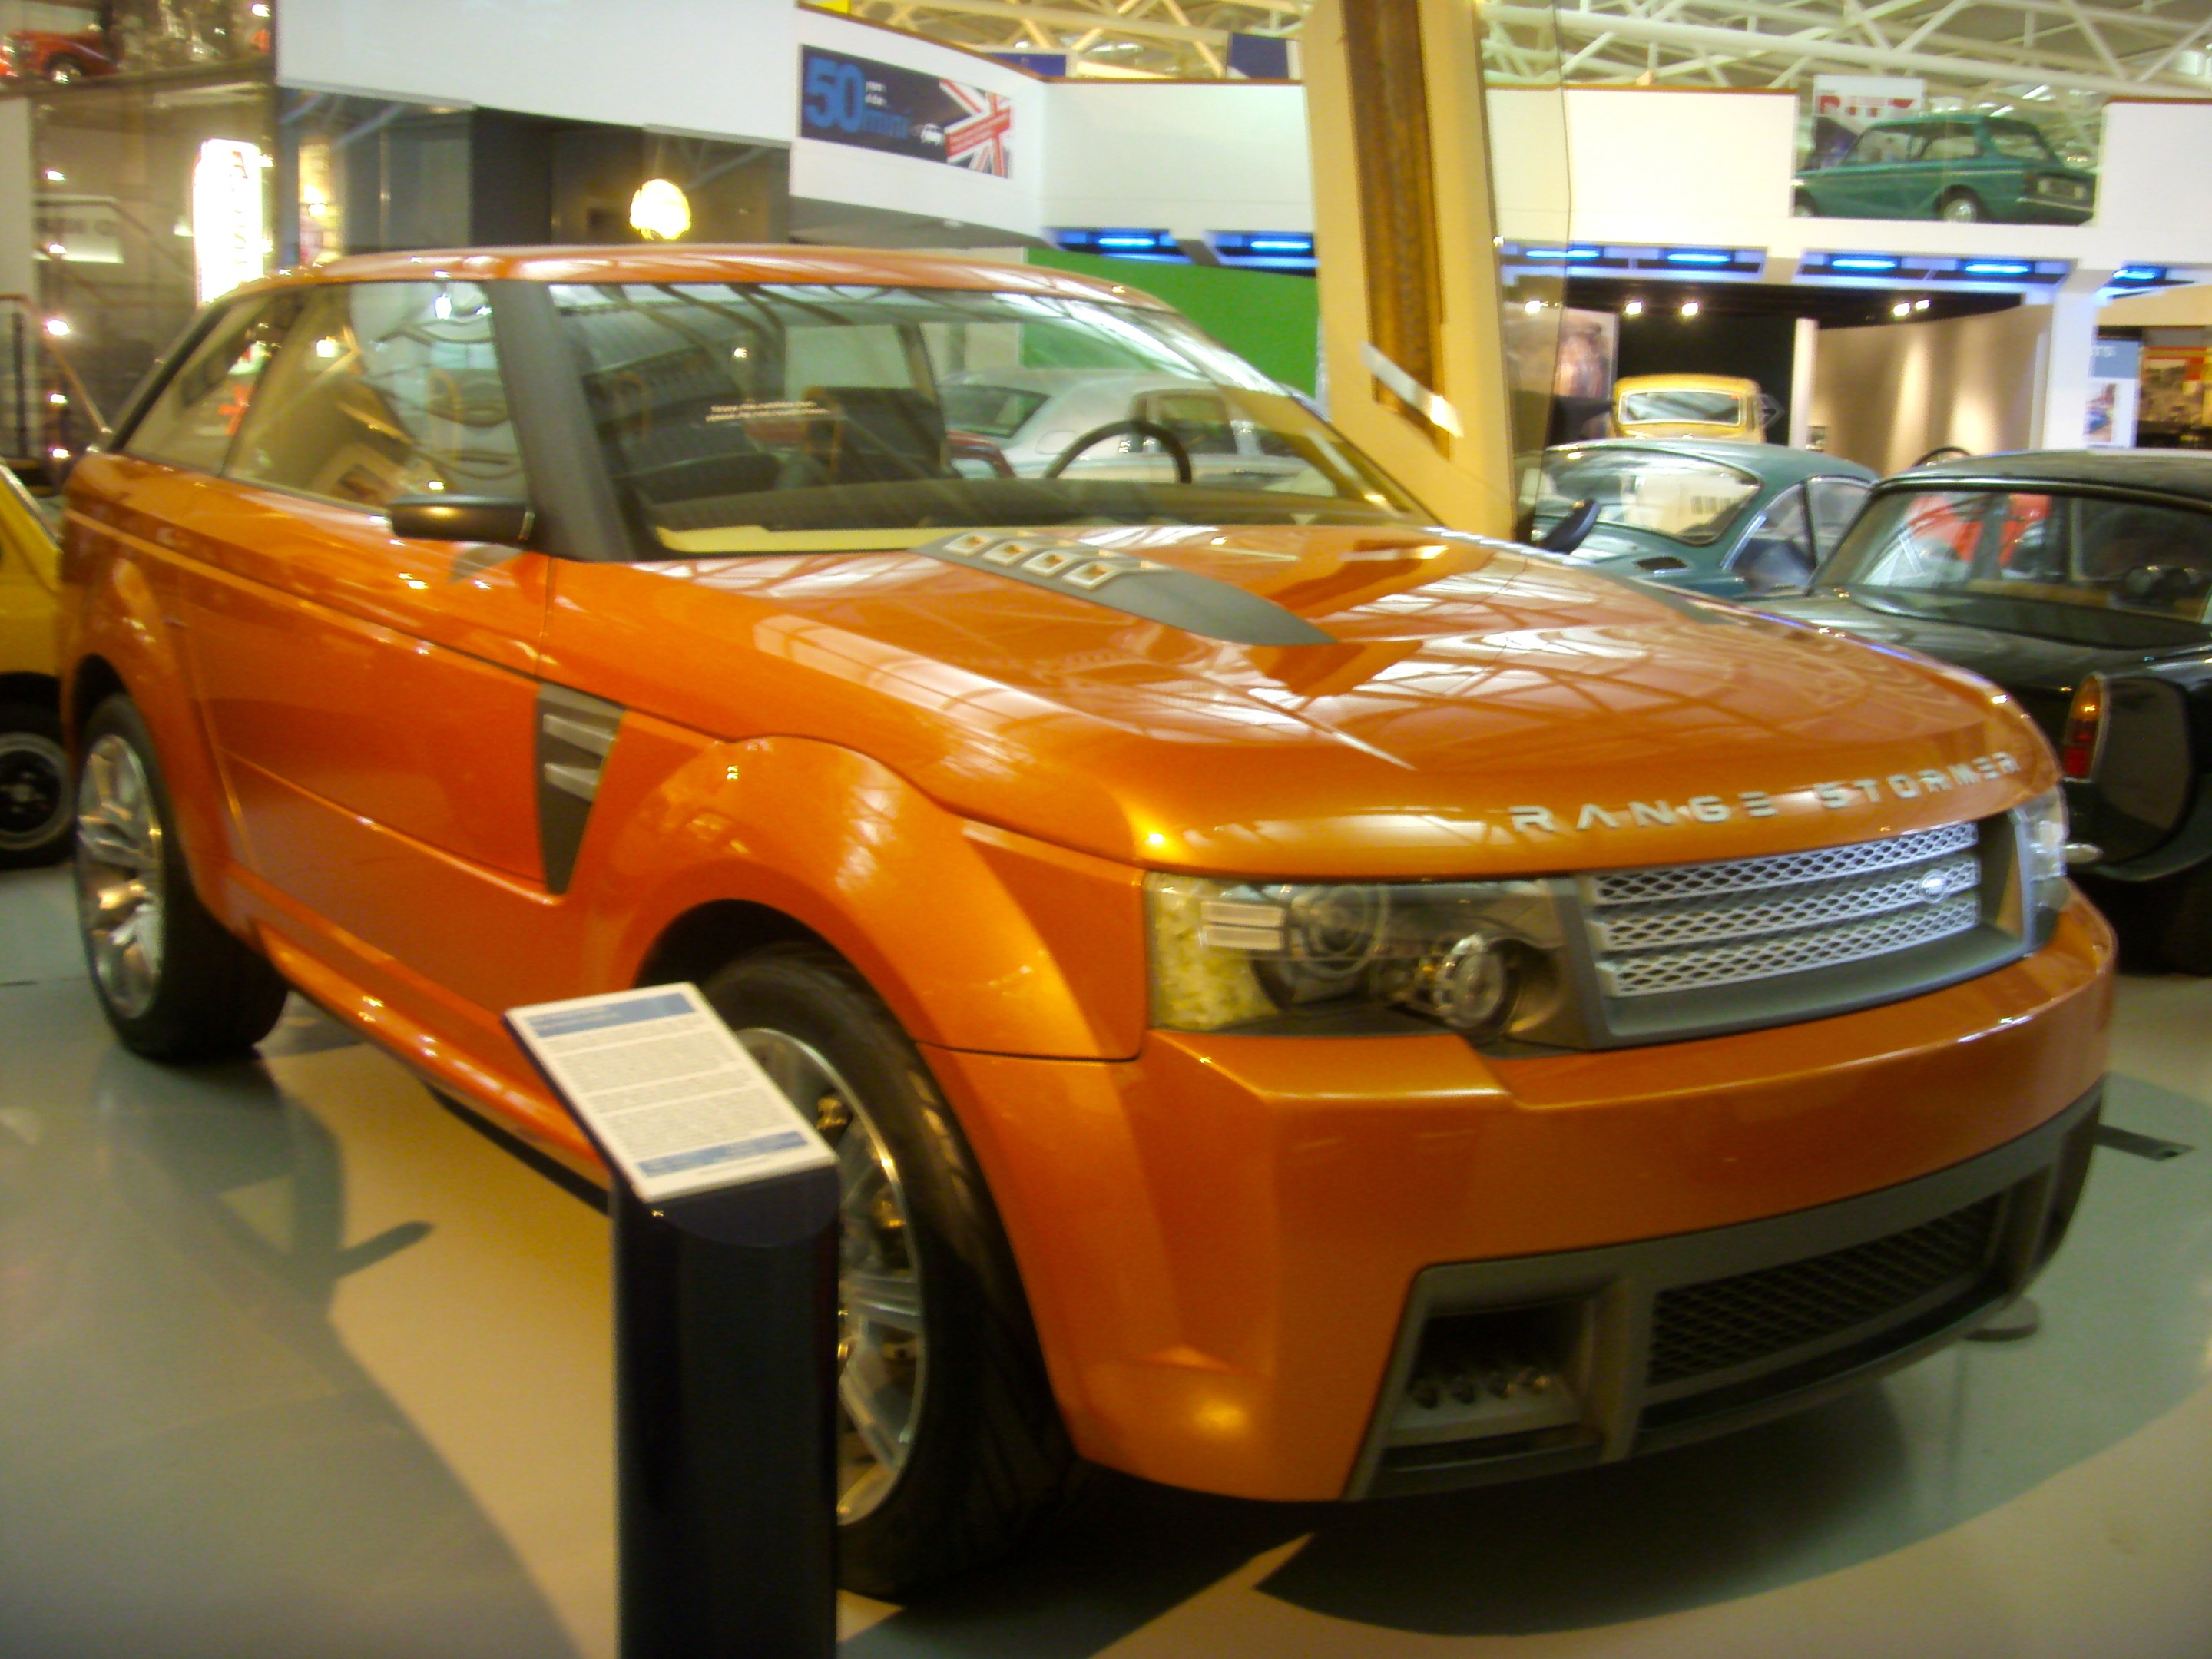 https://upload.wikimedia.org/wikipedia/commons/a/a2/2004_Land_Rover_Range_Stormer_Concept_Heritage_Motor_Centre%2C_Gaydon.jpg